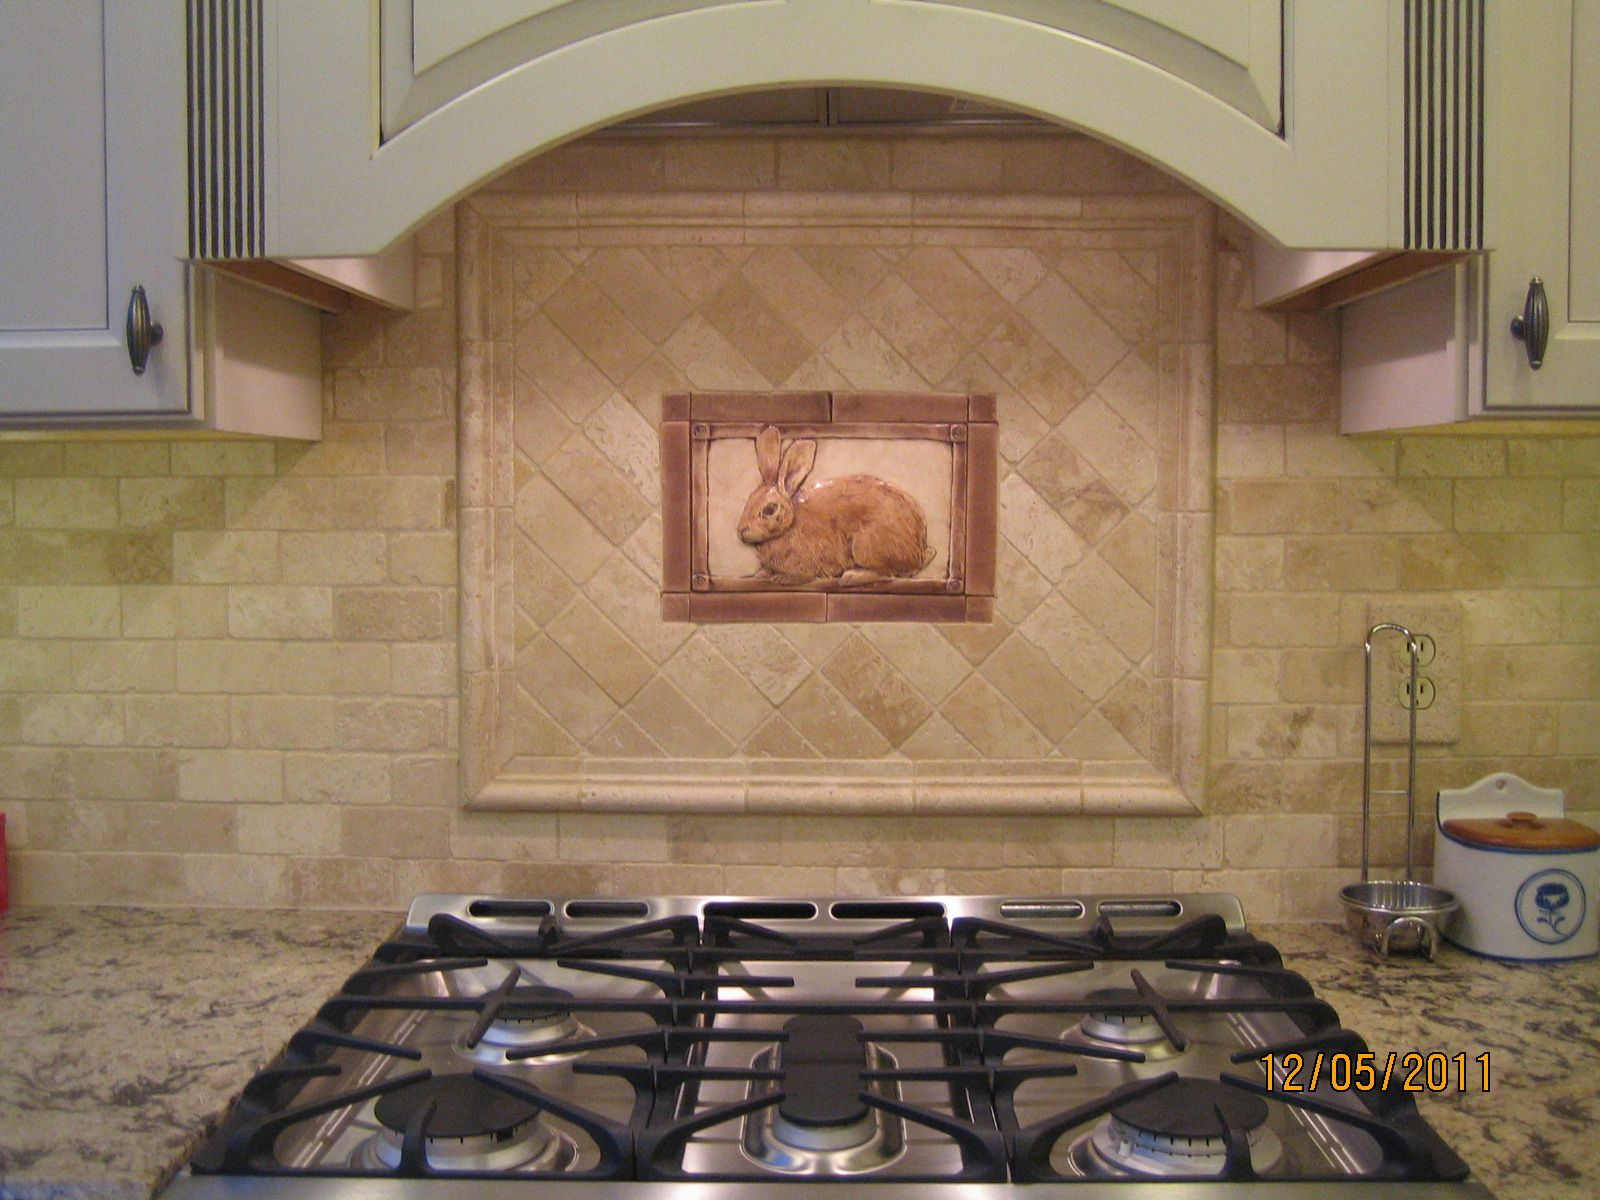 Backsplash Accent Ideas Kitchen Tiled Backsplash With Handcrafted Rabbit Tile As